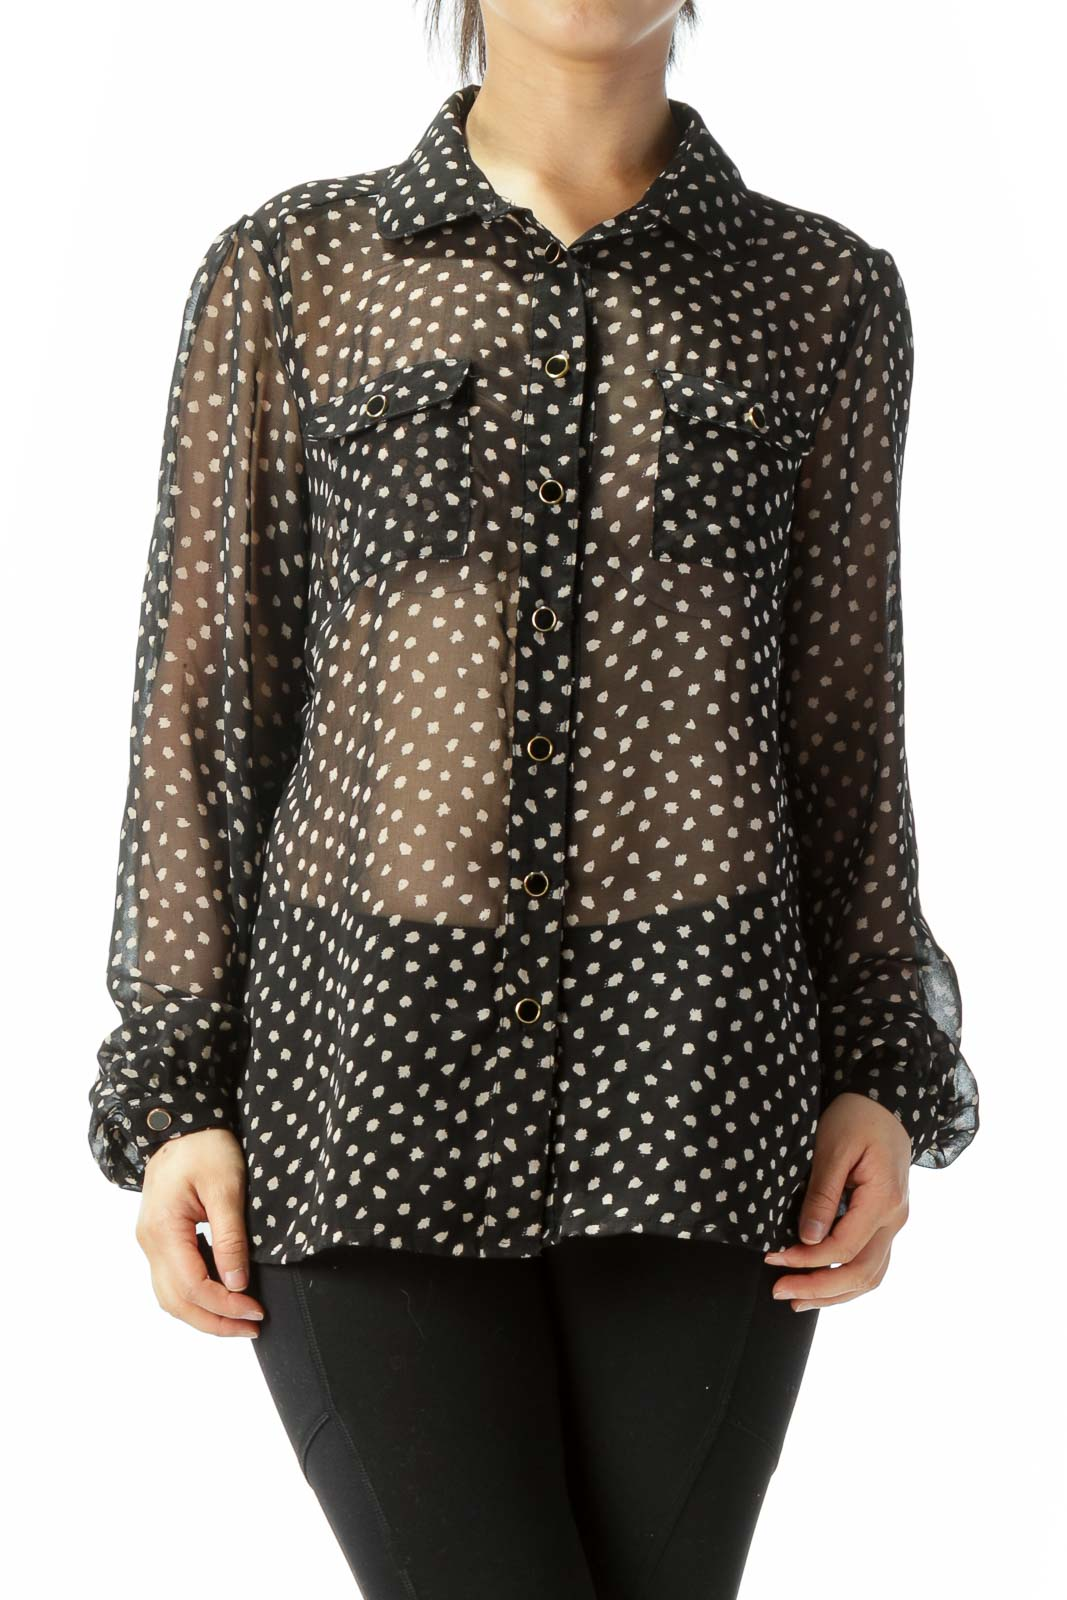 Black Beige Print Pocketed Long Sleeve Translucent Blouse Front